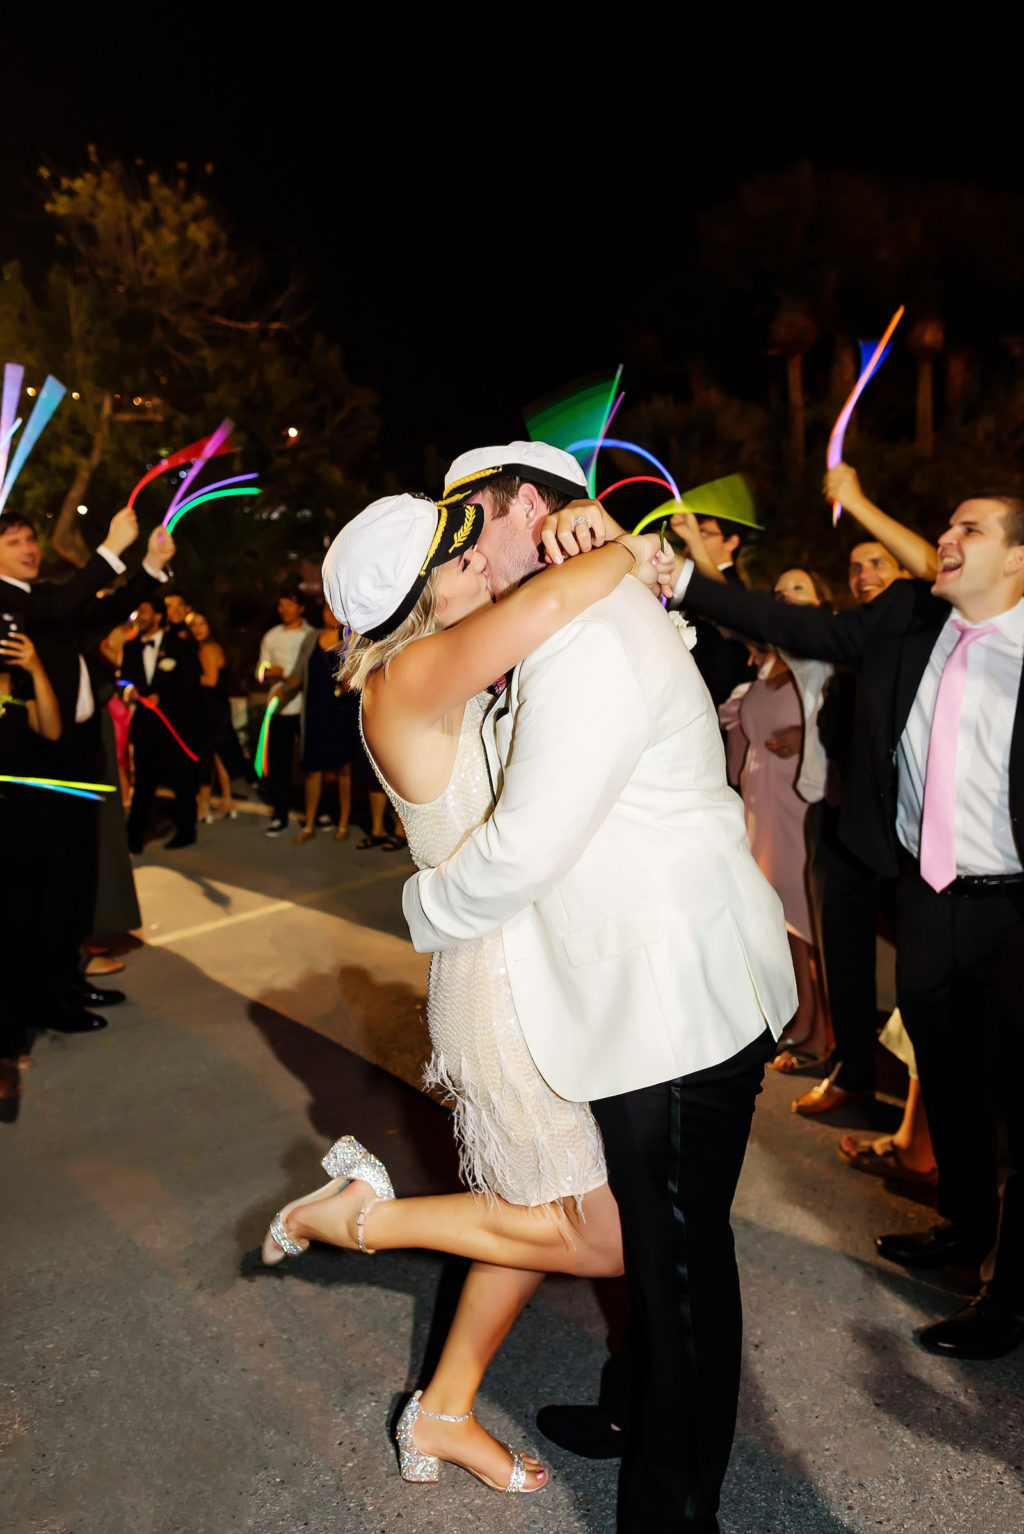 Nautical Bride in Short Wedding Reception Dress, Sailor Hat, and Groom in White Tuxedo with Sailor Hat Kissing During Glowsticks Wedding Exit   Tampa Bay Wedding Photographer Limelight Photography